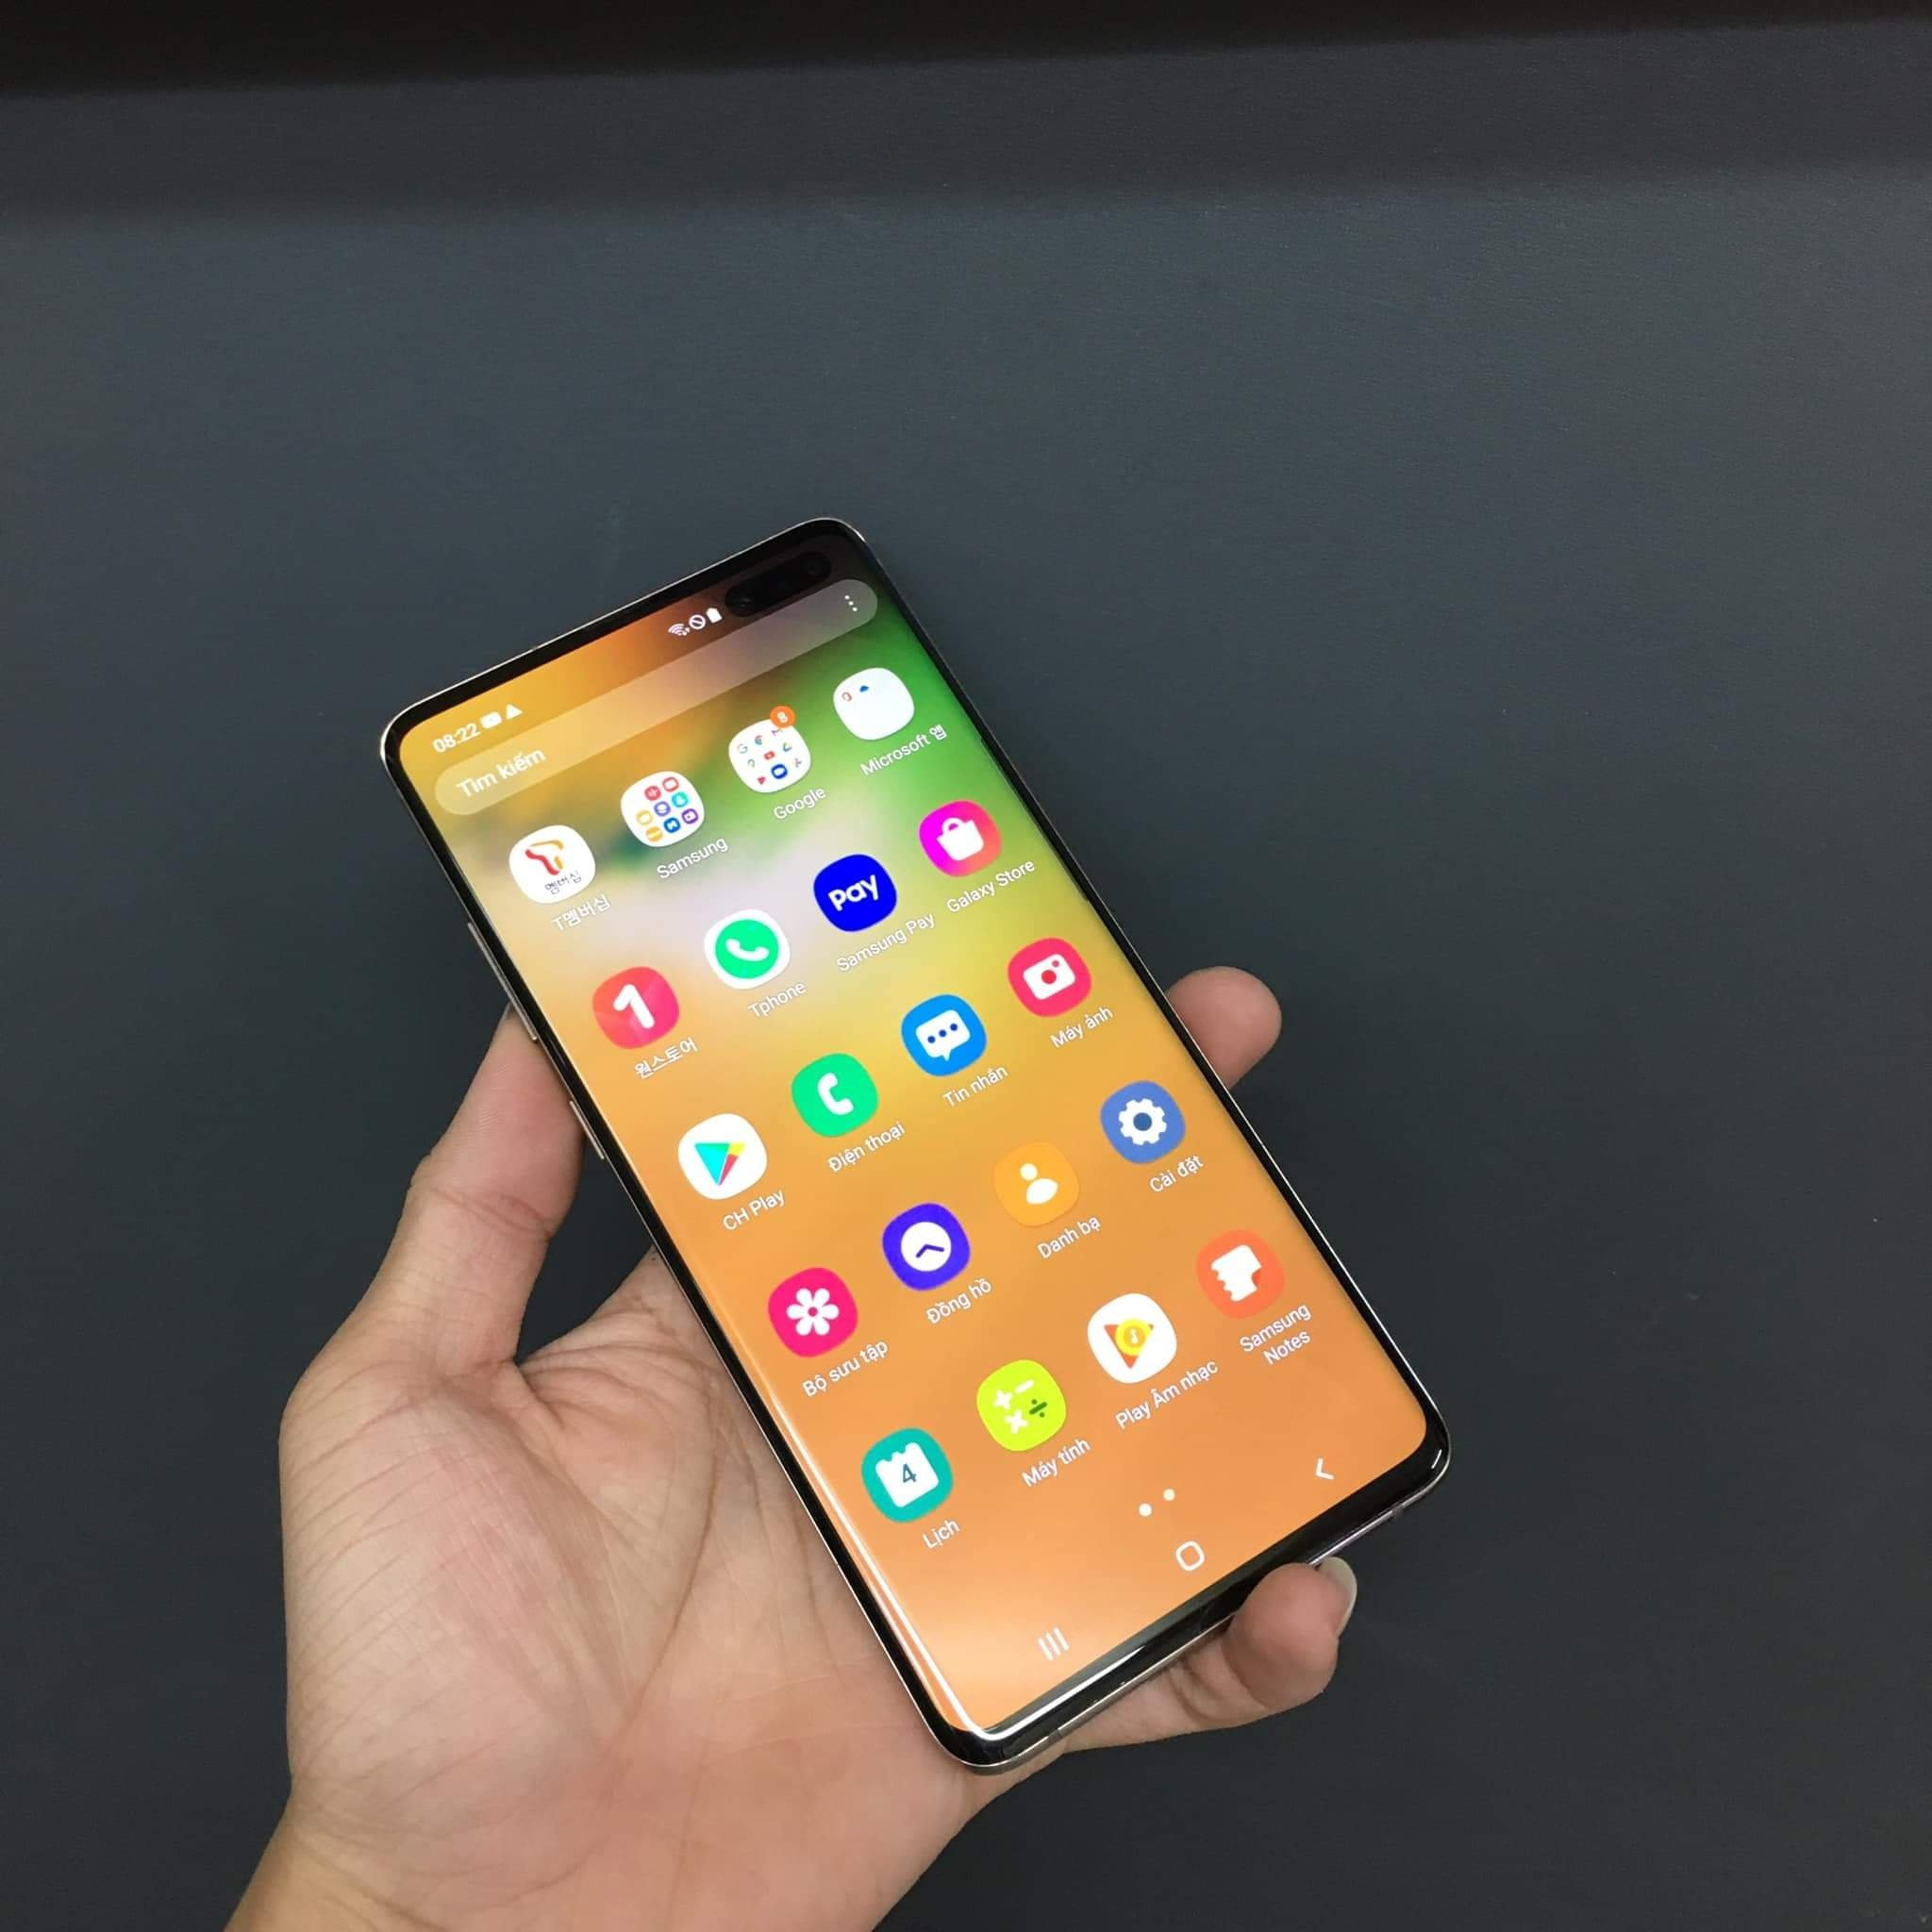 Review rambling about Samsung Galaxy S10 5G at the present time after more than 2 years of launch